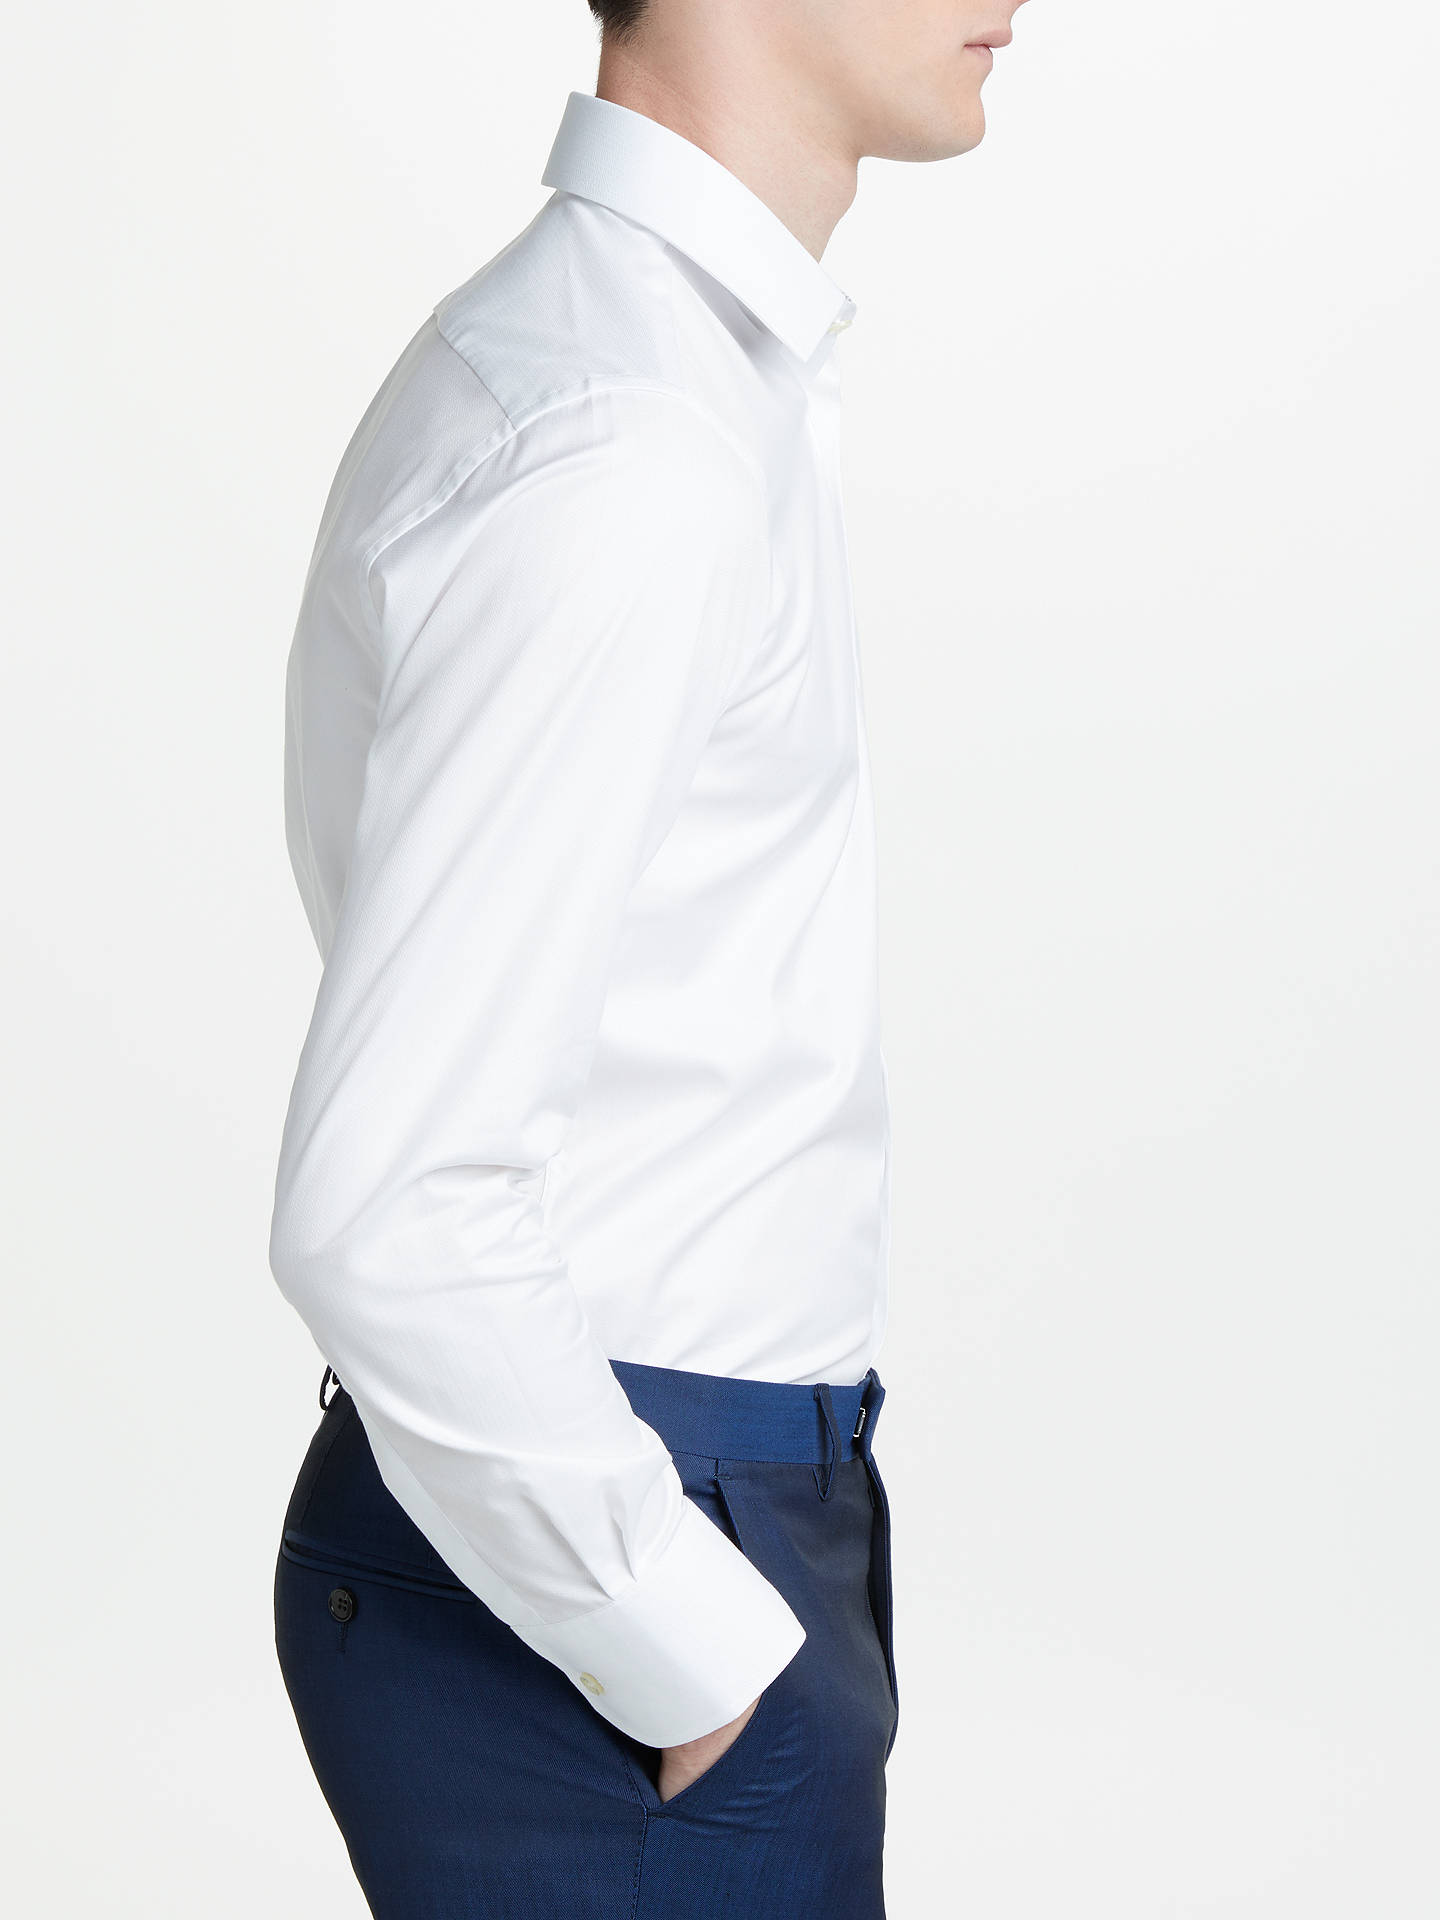 BuySmyth & Gibson Non Iron Twill Herringbone Contrast Slim Fit Shirt, White, 15 Online at johnlewis.com